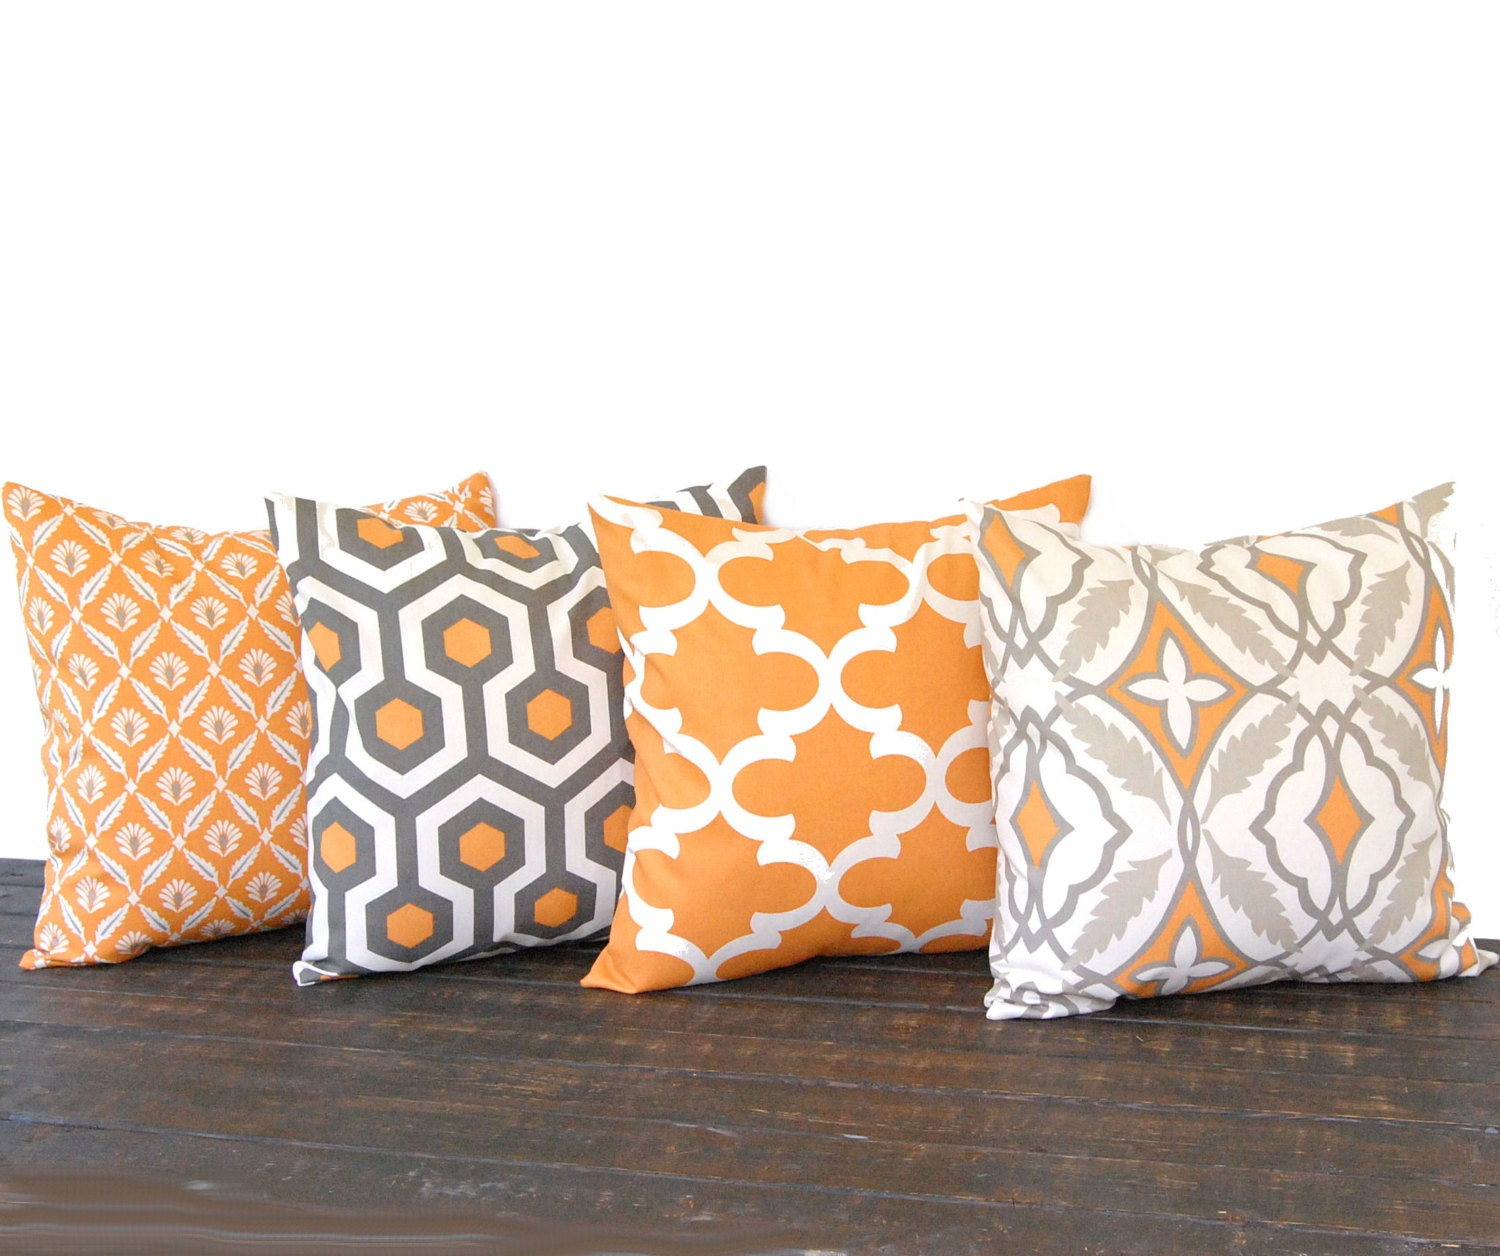 Decorative Pillows Etsy : Throw pillow covers Set Of Four pumpkin orange by ThePillowPeople